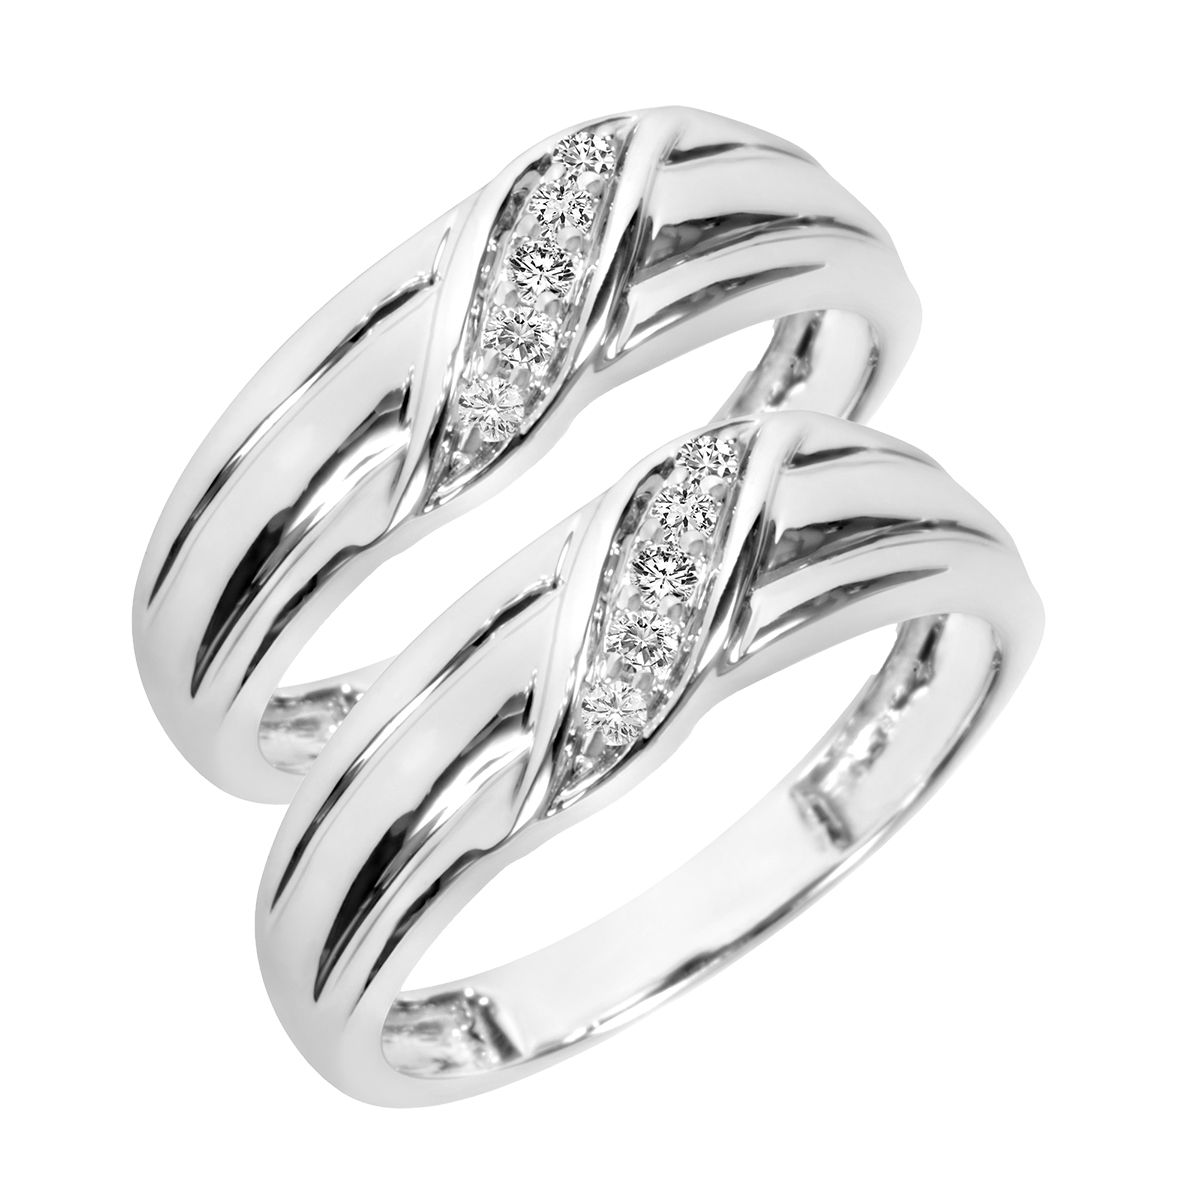 1/4 Carat T.W. Round Cut Mens  Same Sex Wedding Band Set 10K White Gold- Size 8